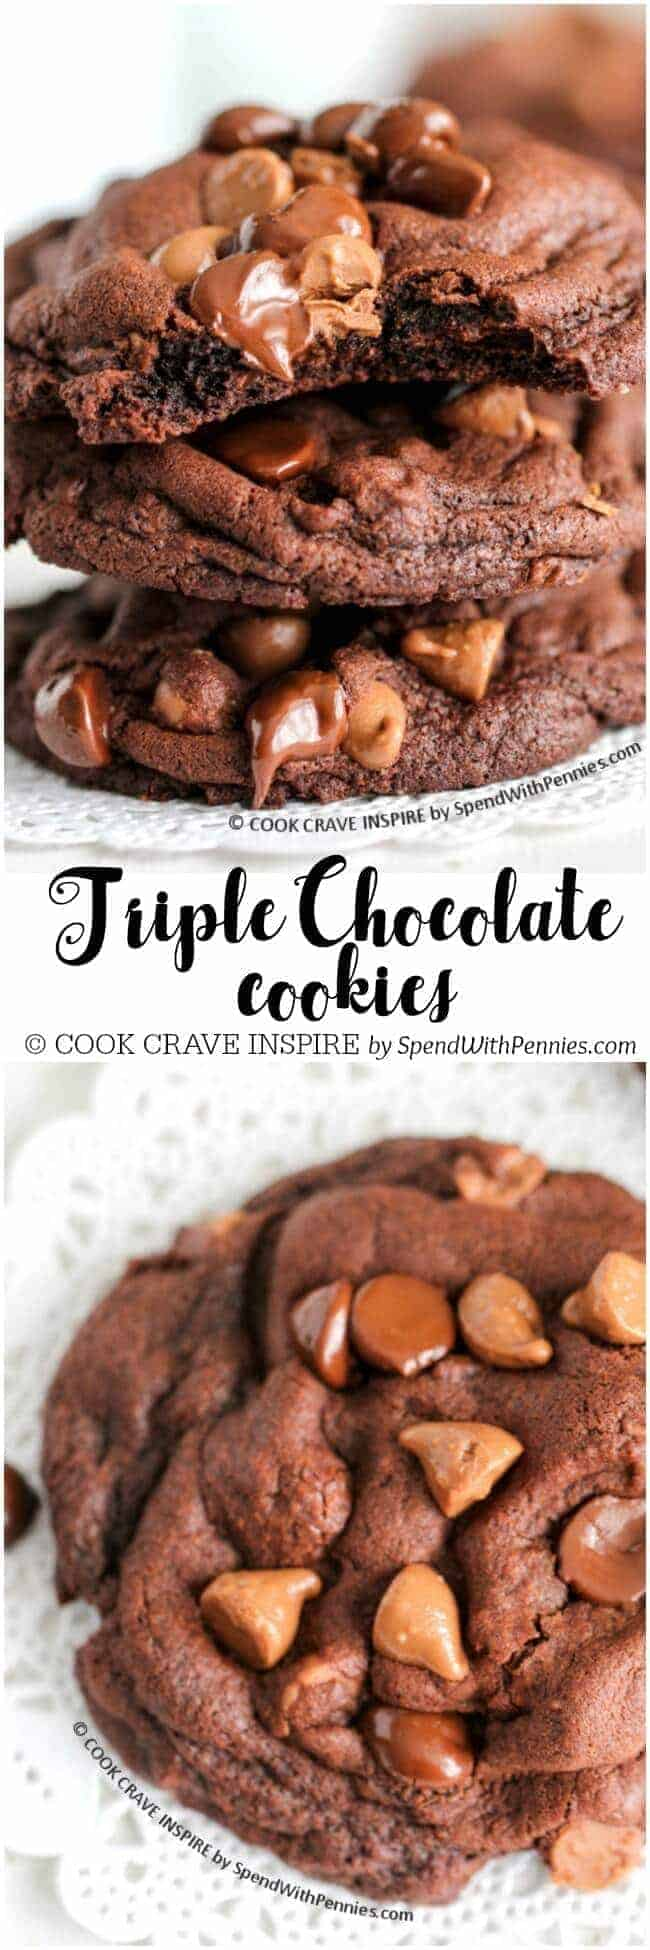 Easy Triple Chocolate Cookies - Spend With Pennies